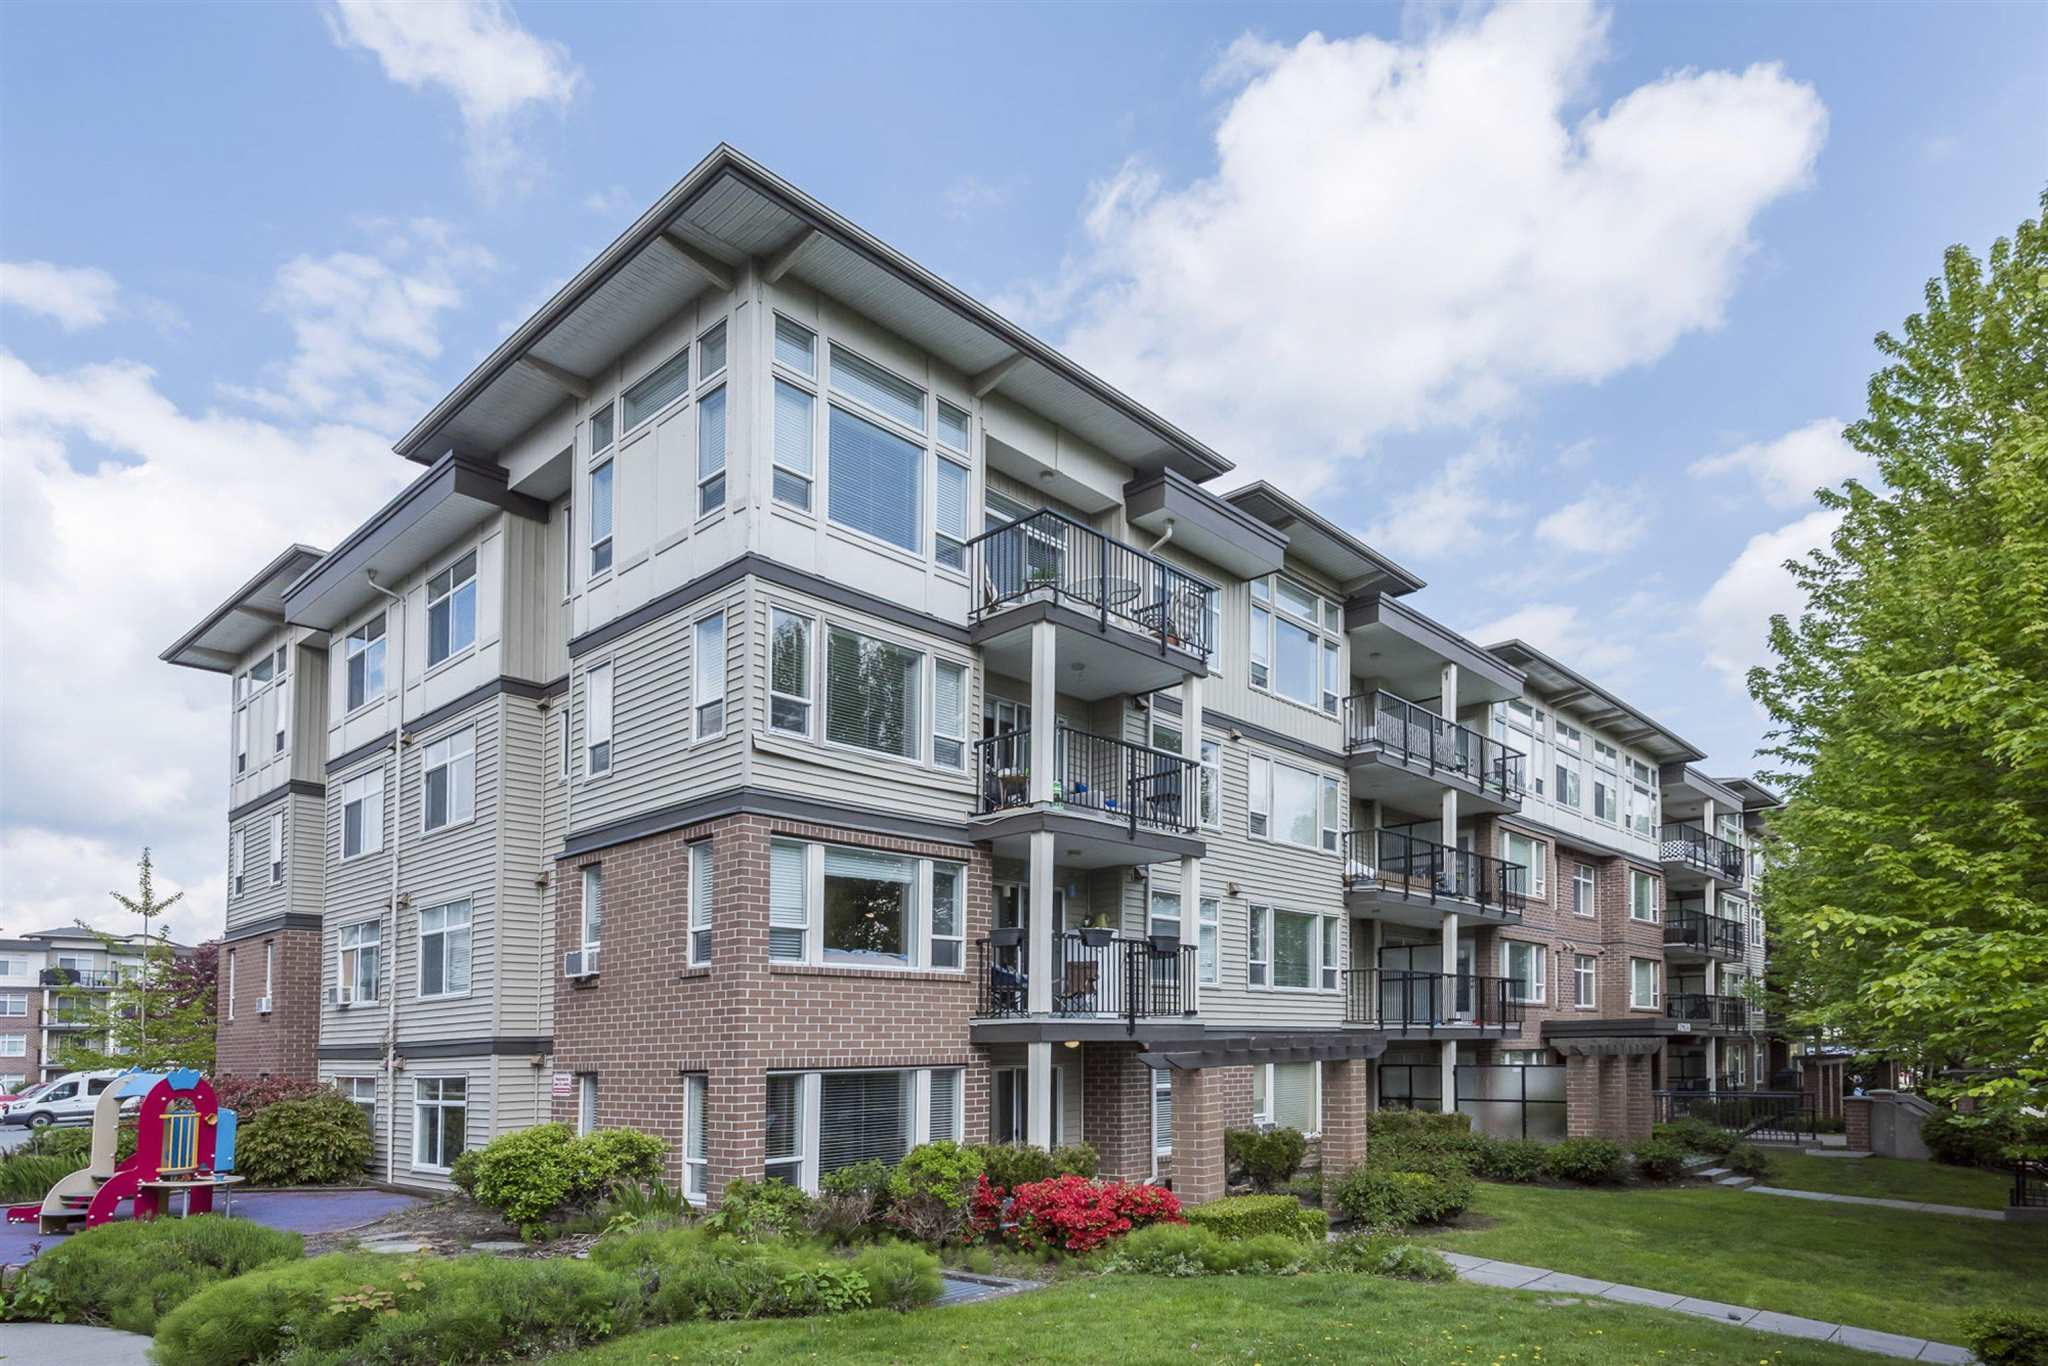 402 46289 YALE ROAD - Chilliwack E Young-Yale Apartment/Condo for sale, 2 Bedrooms (R2606016) - #1